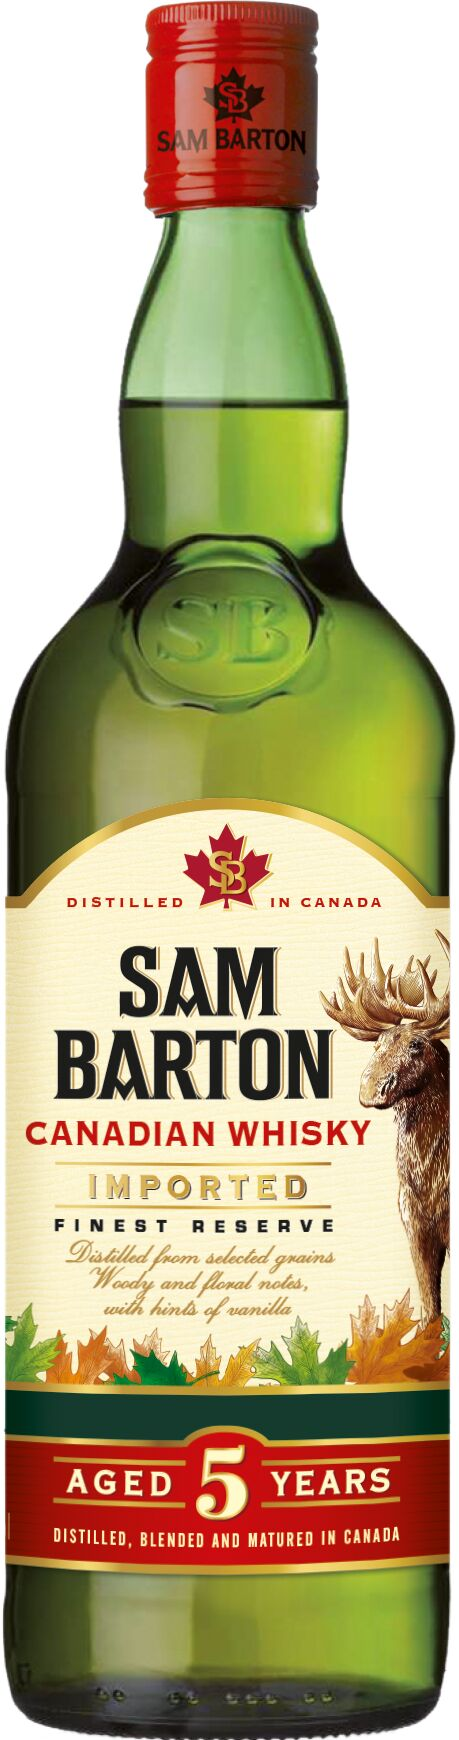 Sam Barton 5 Year Old Canadian Whisky 70cl